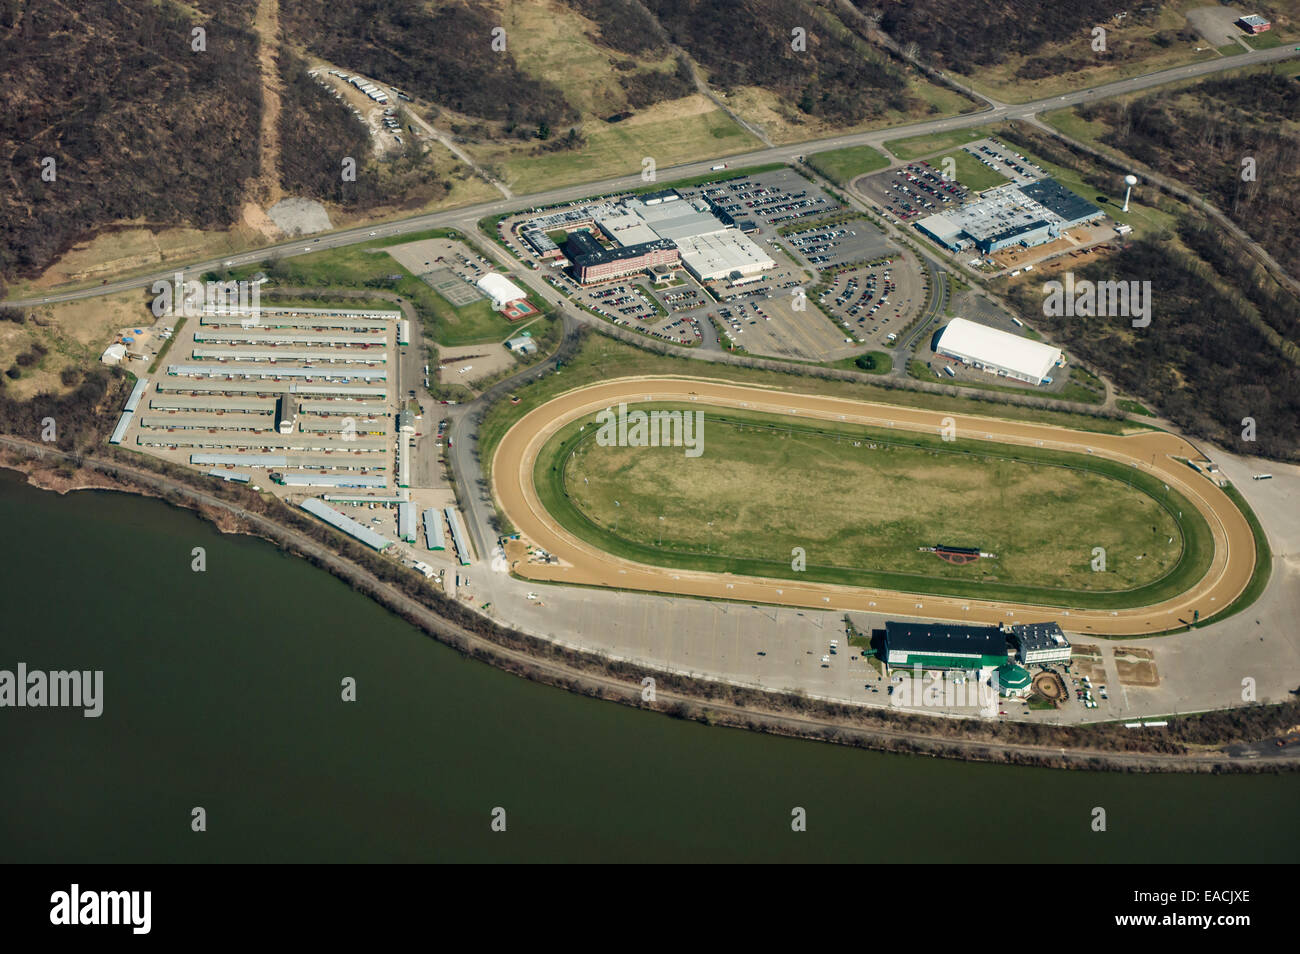 aerial view of mountaineer race track & gambling resort. new stock